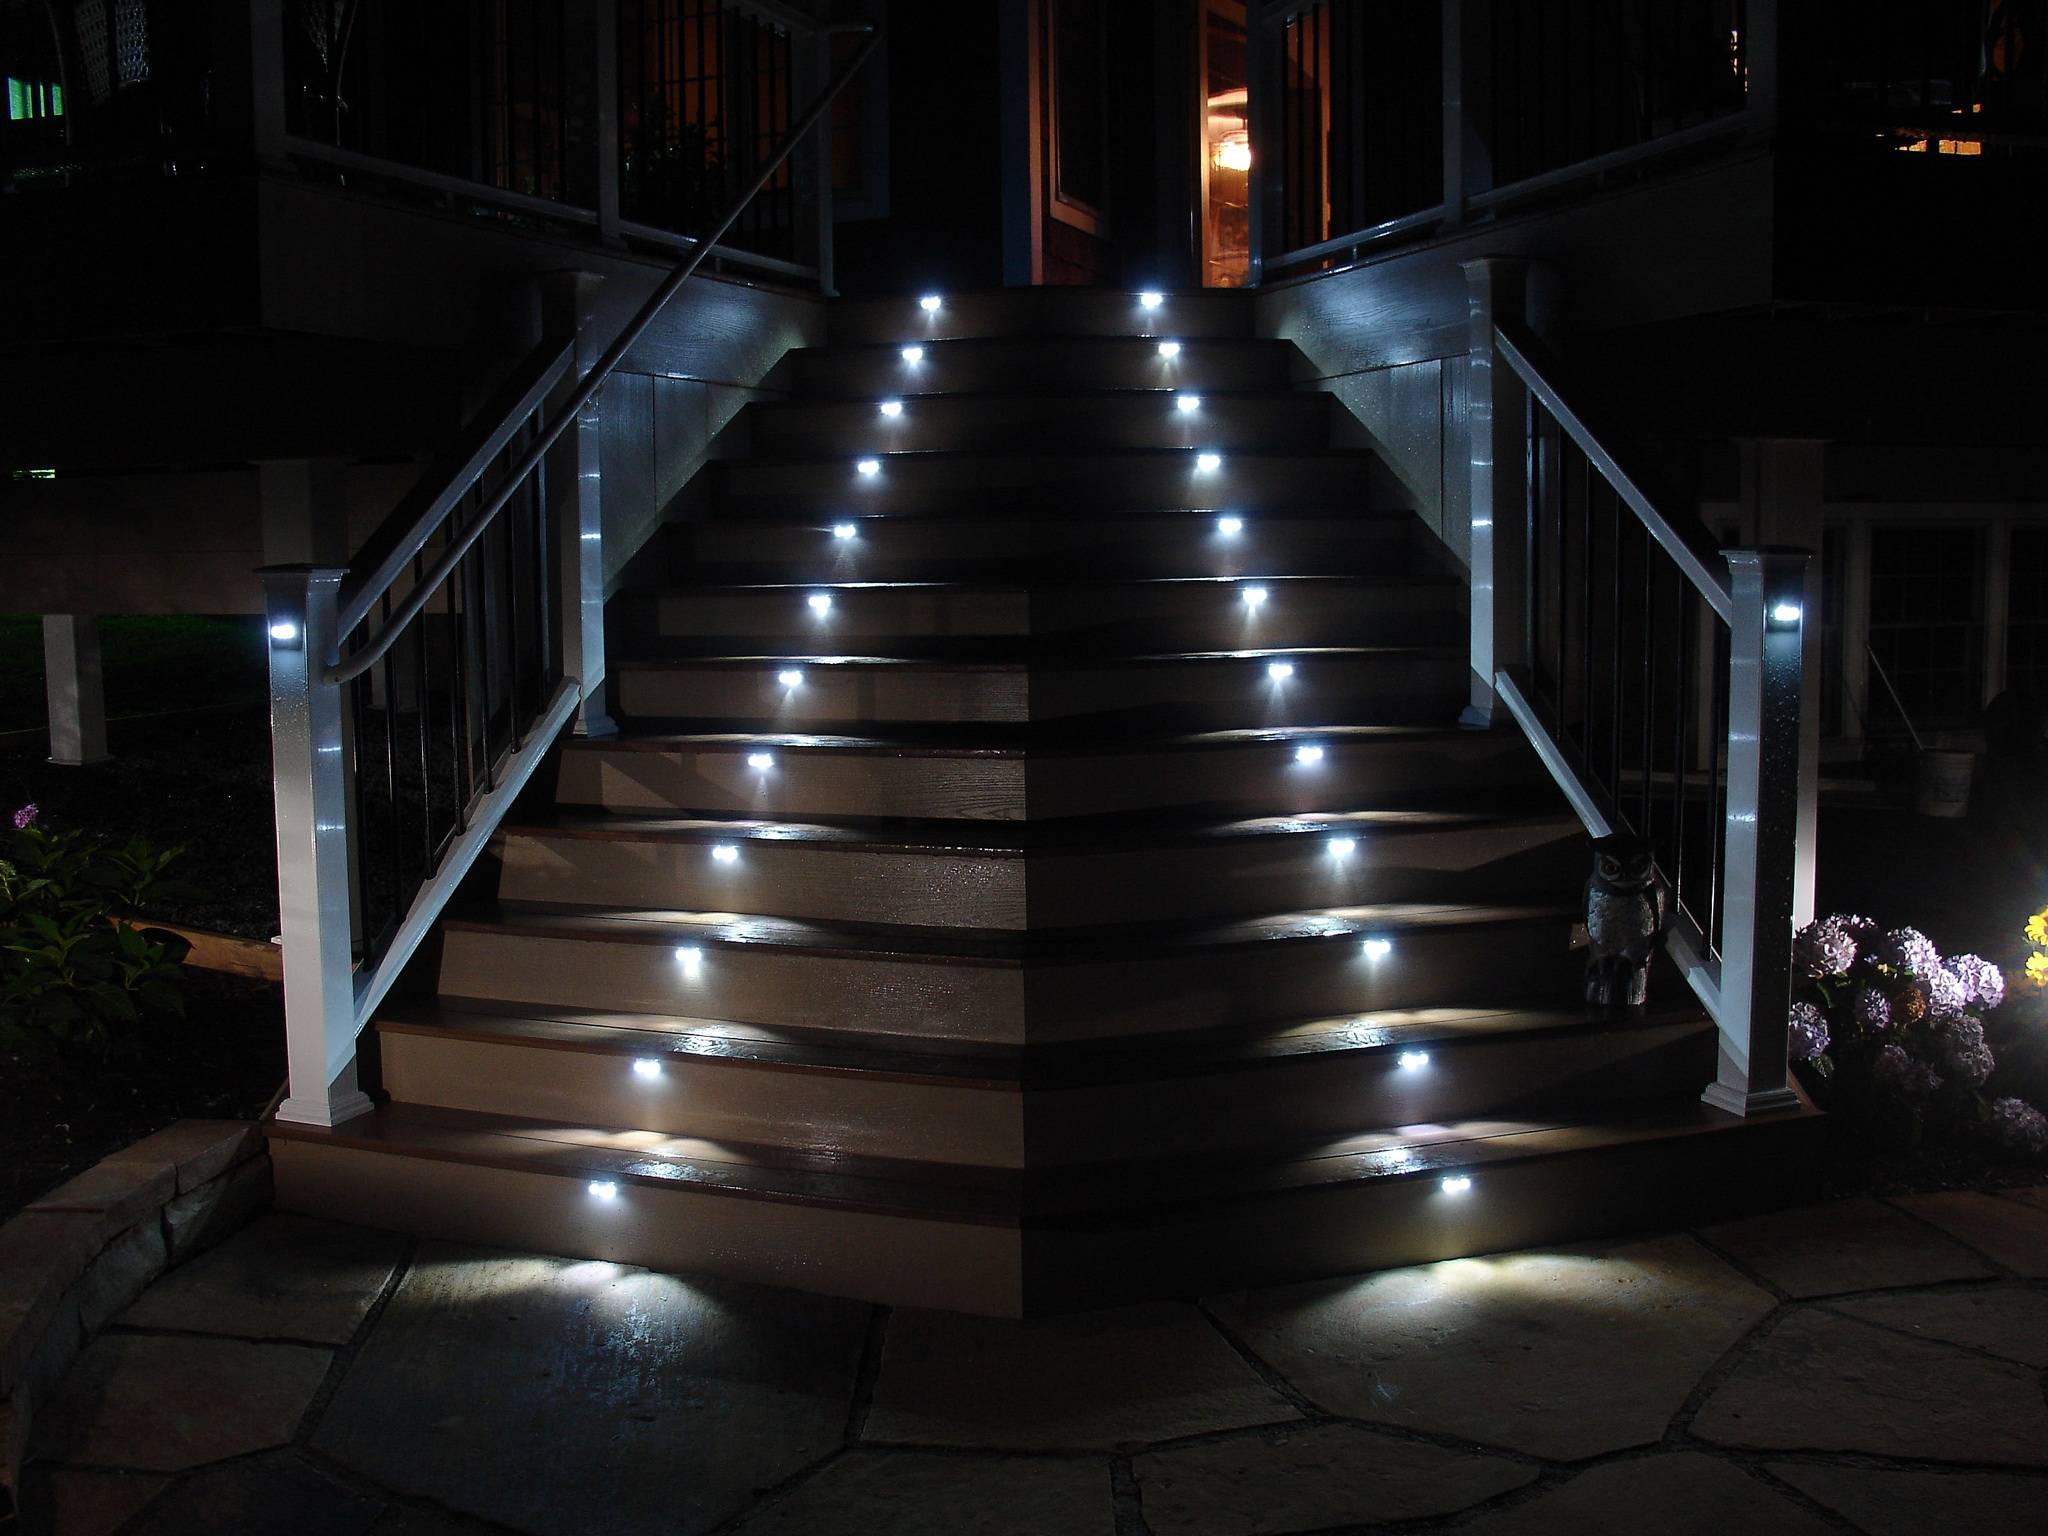 Lighting Basement Washroom Stairs: Illuminating Interior & Exterior Stairs